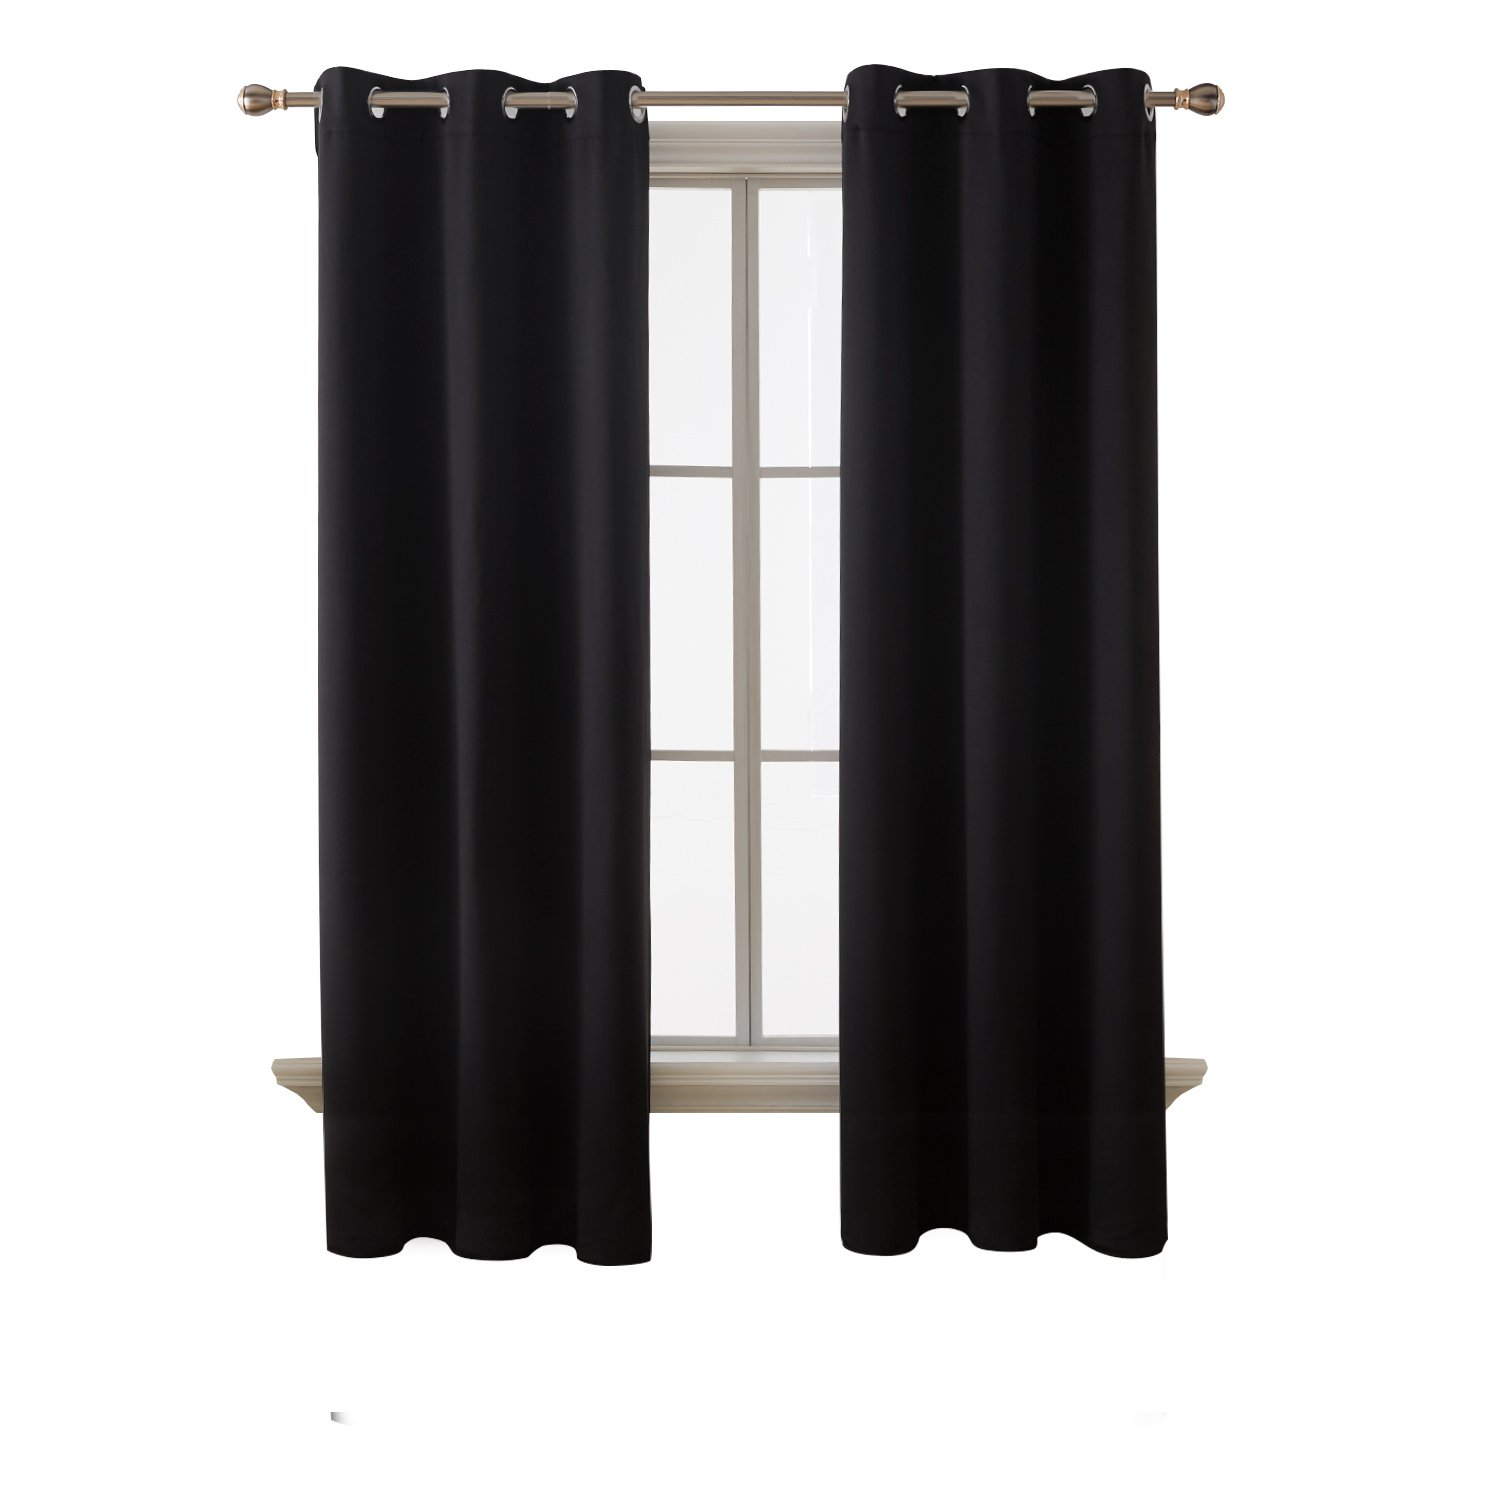 Bedroom Curtains On Amazon Small Bedroom Ideas Nyc Chalkboard Art Bedroom Bedroom Sets For Girls: Black Curtains For Bedroom: Amazon.com